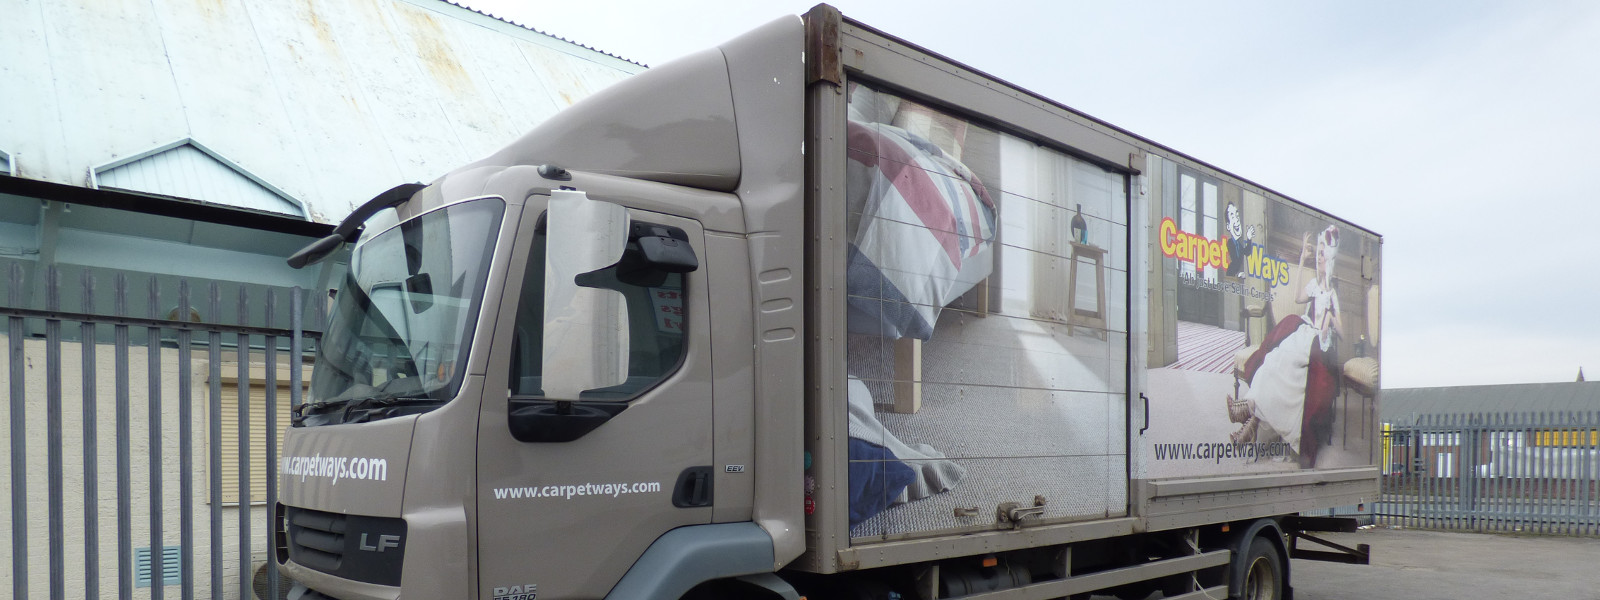 CarpetWays Delivery Lorry